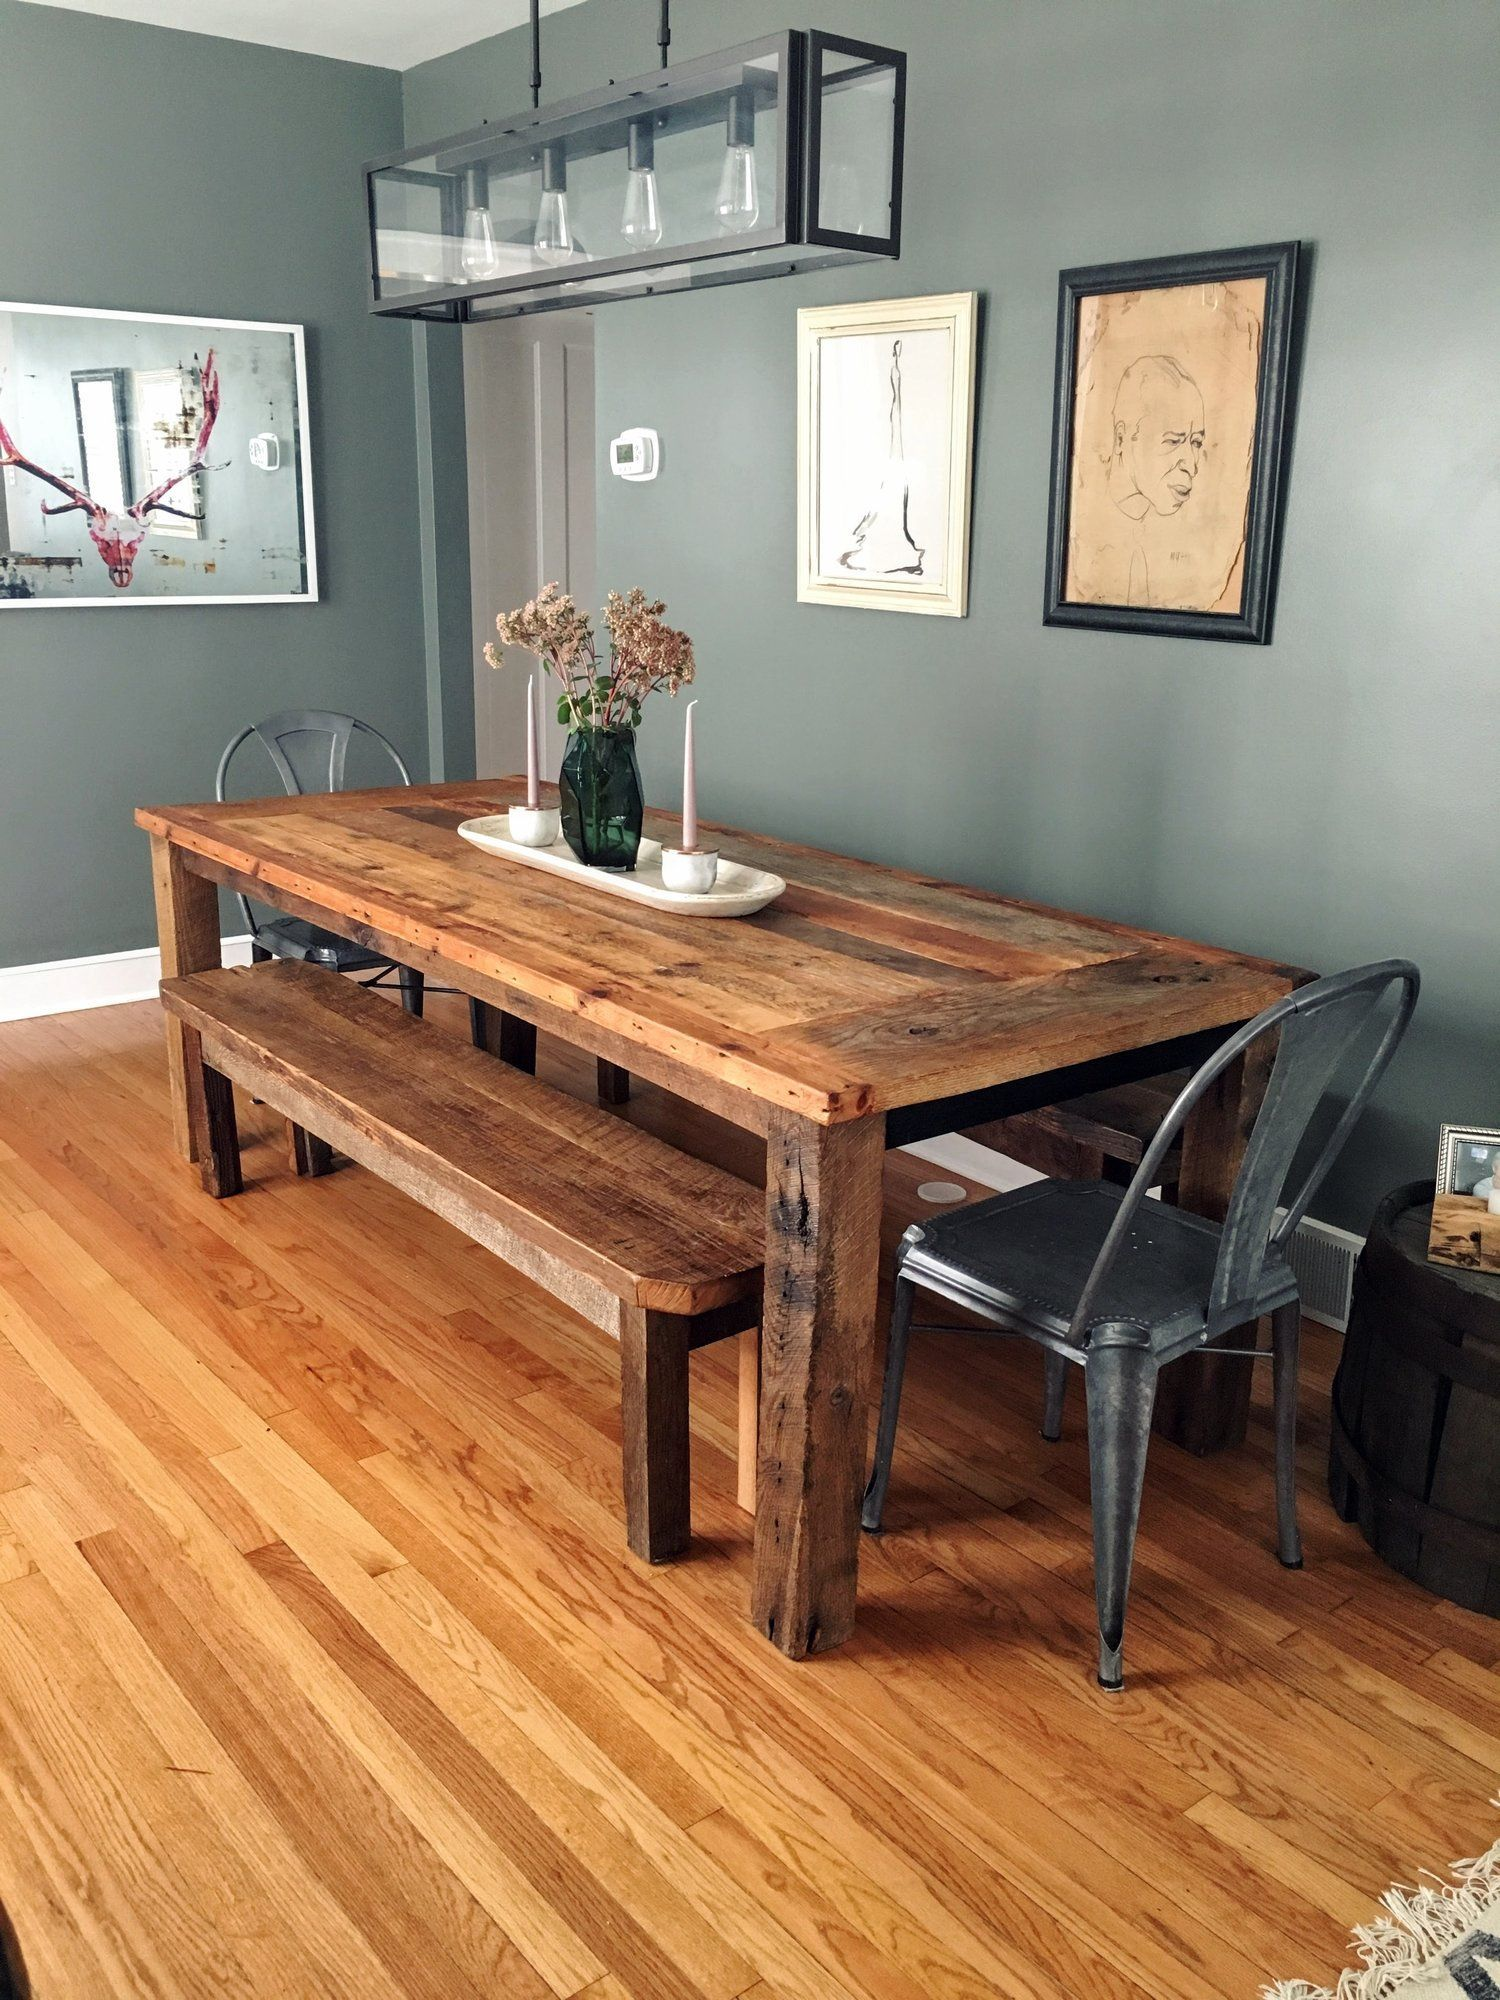 Reclaimed Wood Farmhouse Dining Table Textured Finish What We